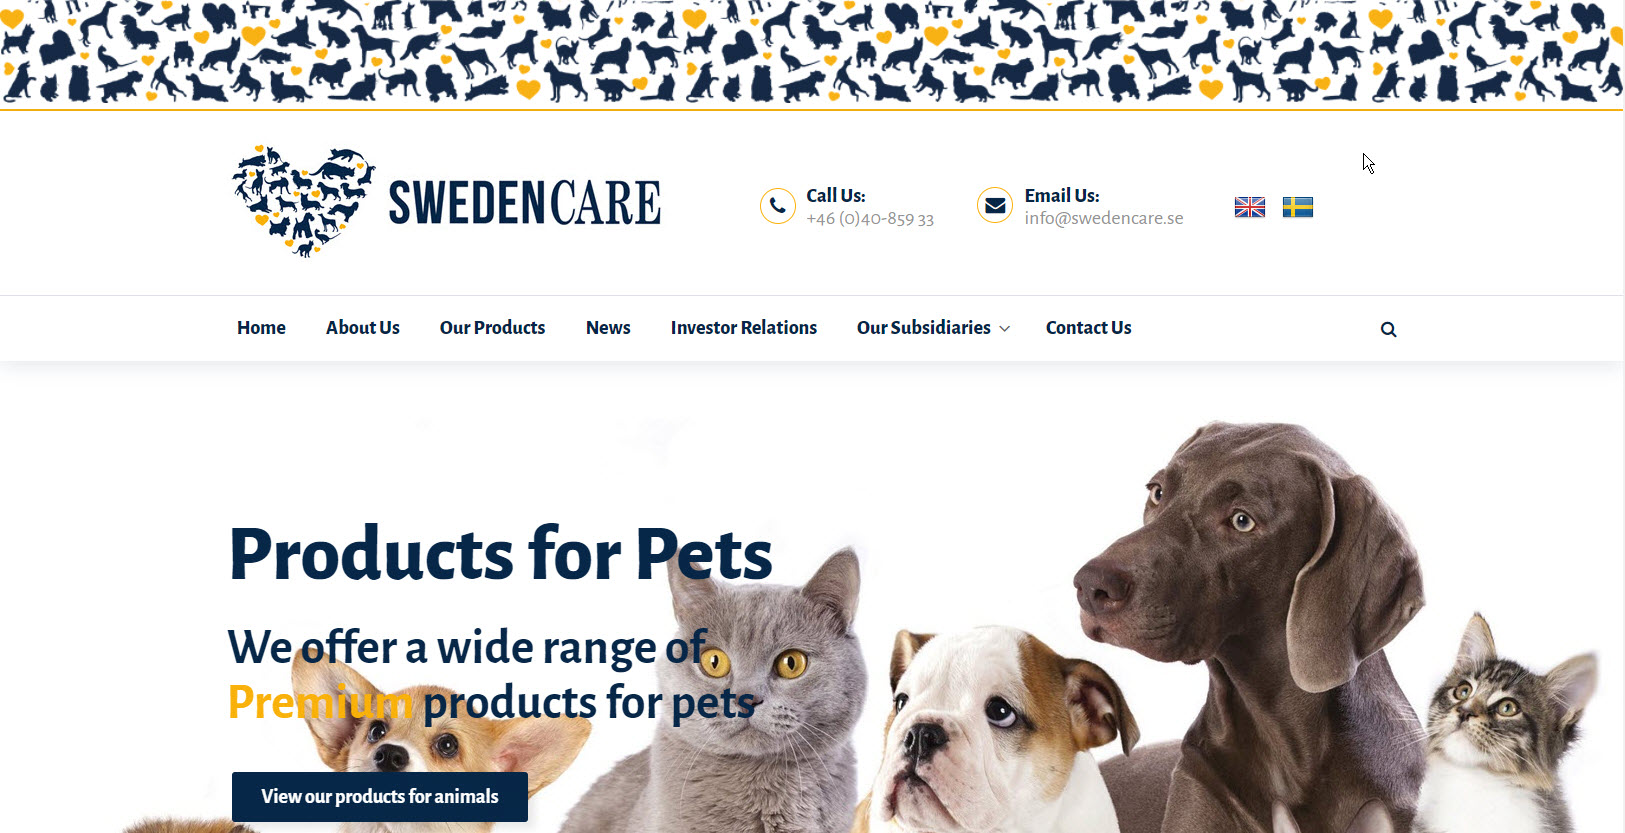 Website-made-by-Eazy-Office-Swedencare-AB-(publ)